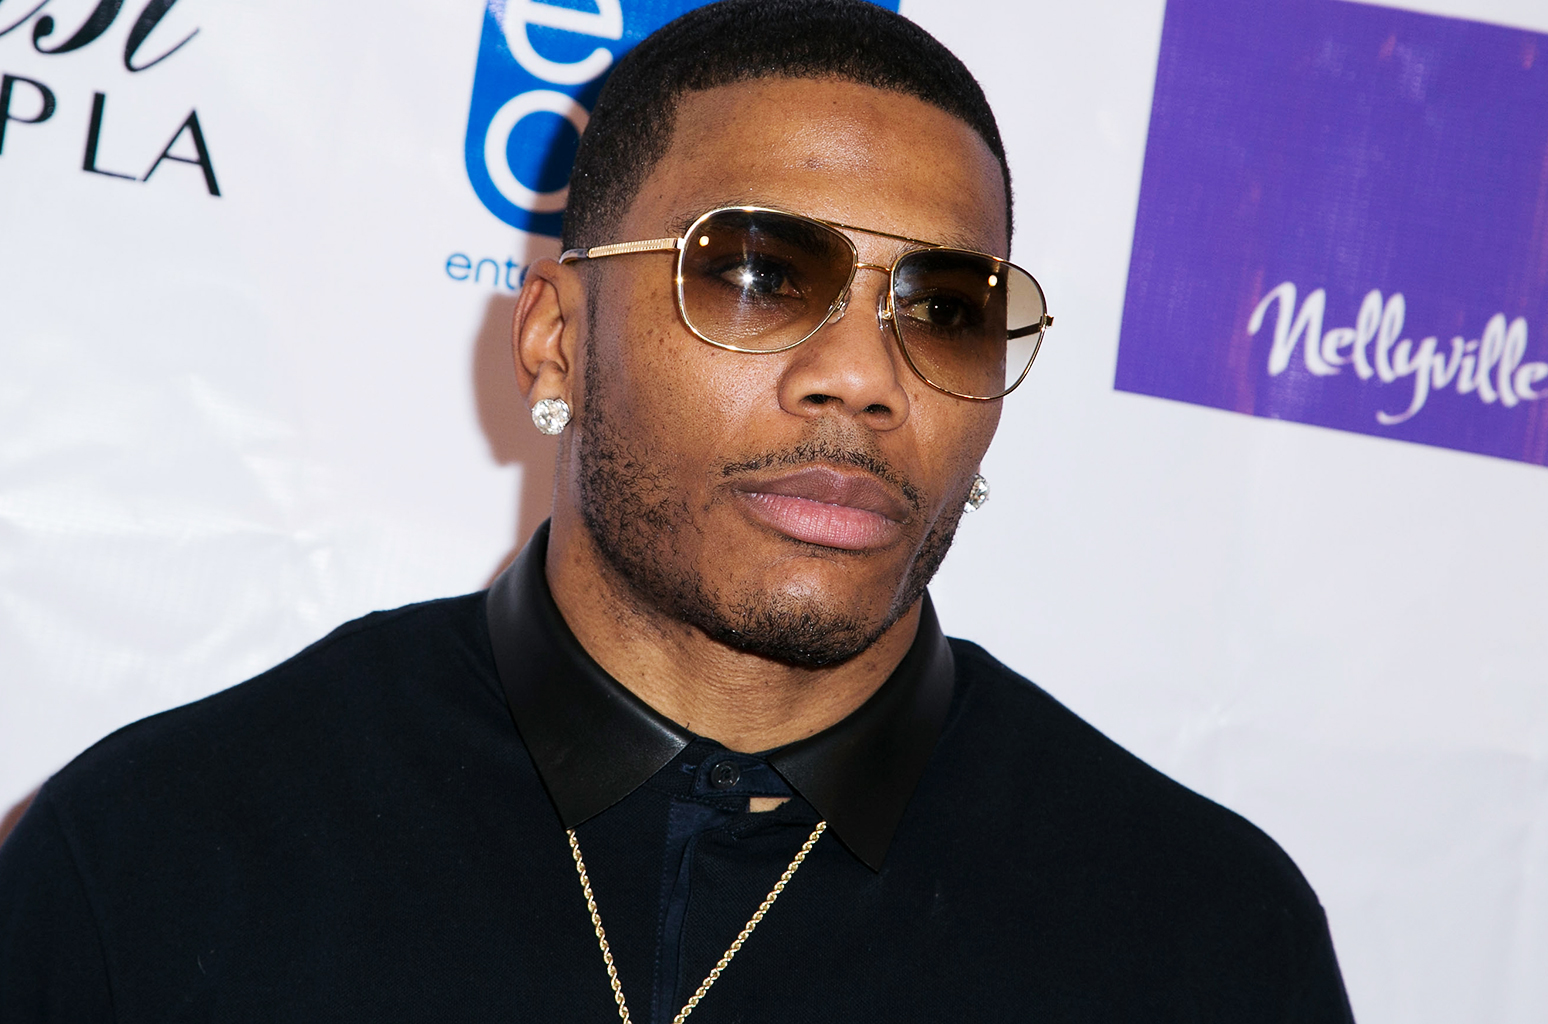 Nelly Accused of Sexual Assault Again d69a7b3496a74